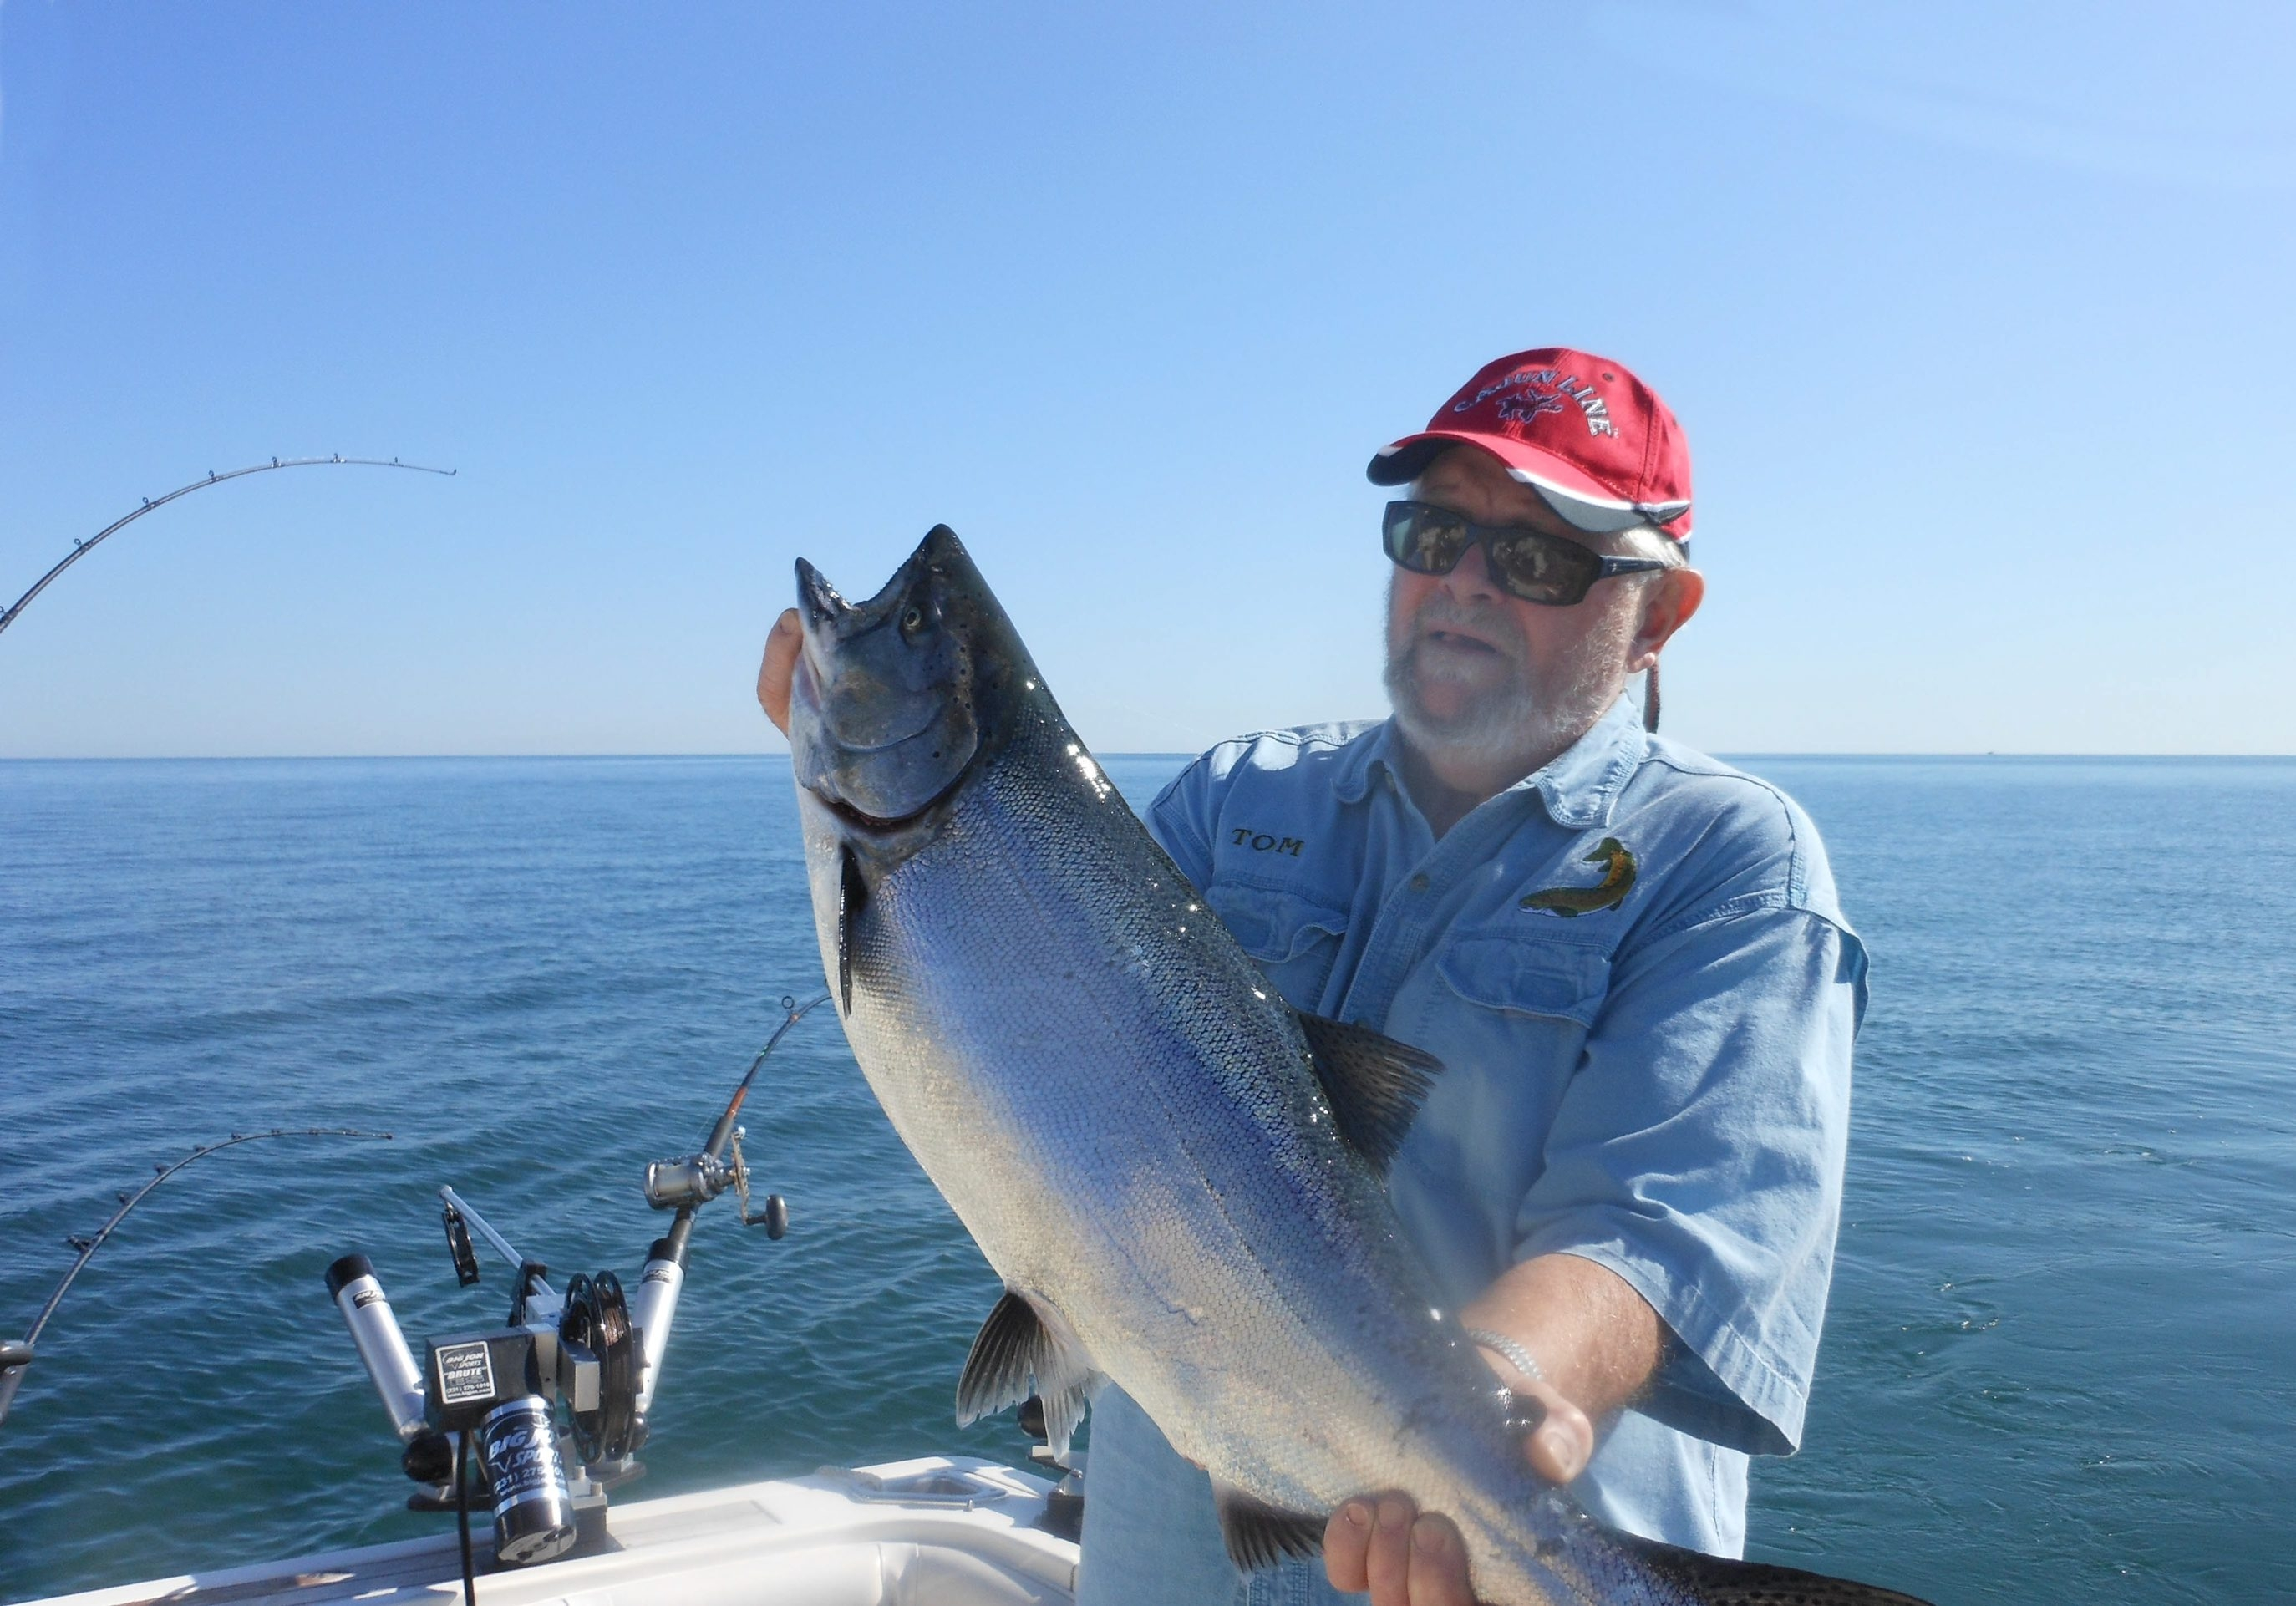 Tom Danaher took the top salmon on a Lake Ontario trolling run out of Olcott Harbor this past week.